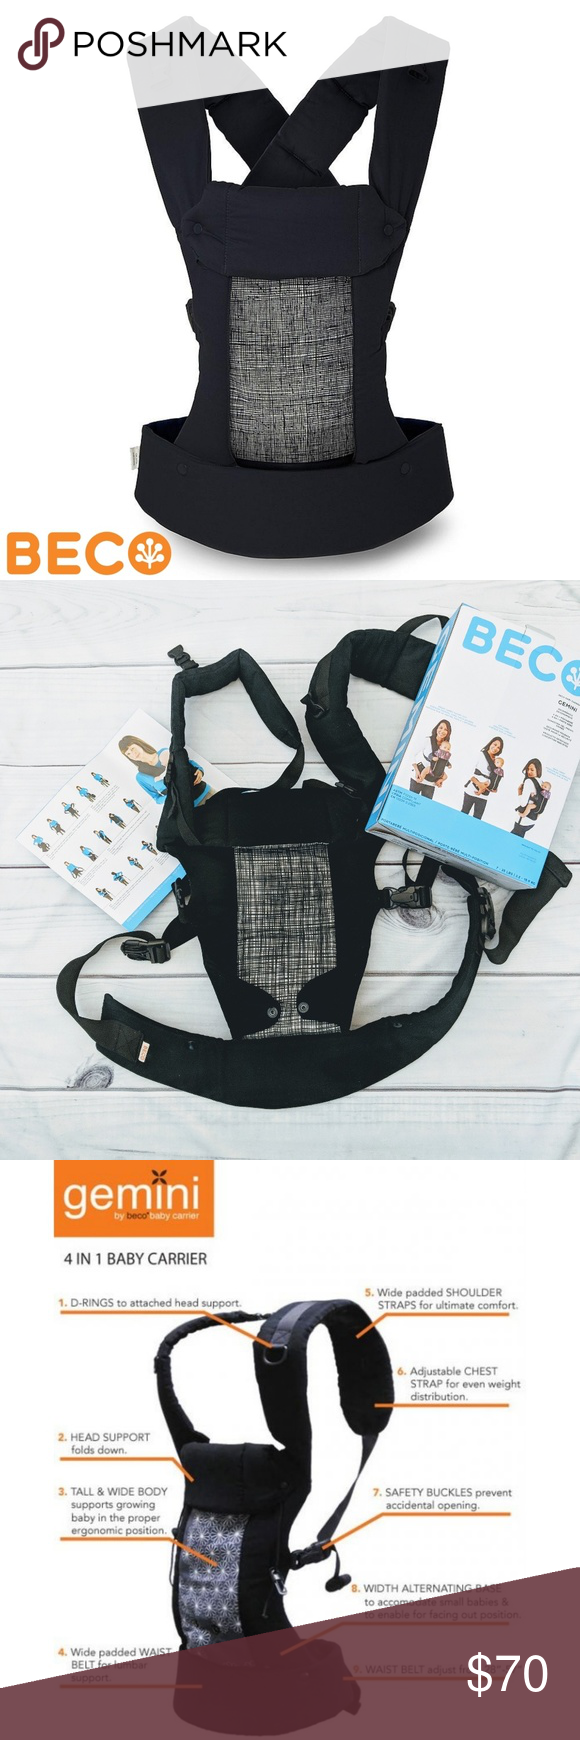 192eb80e00d Beco Gemini 4-in-1 Baby Carrier 7-35 lbs. Scribble Gently used ...